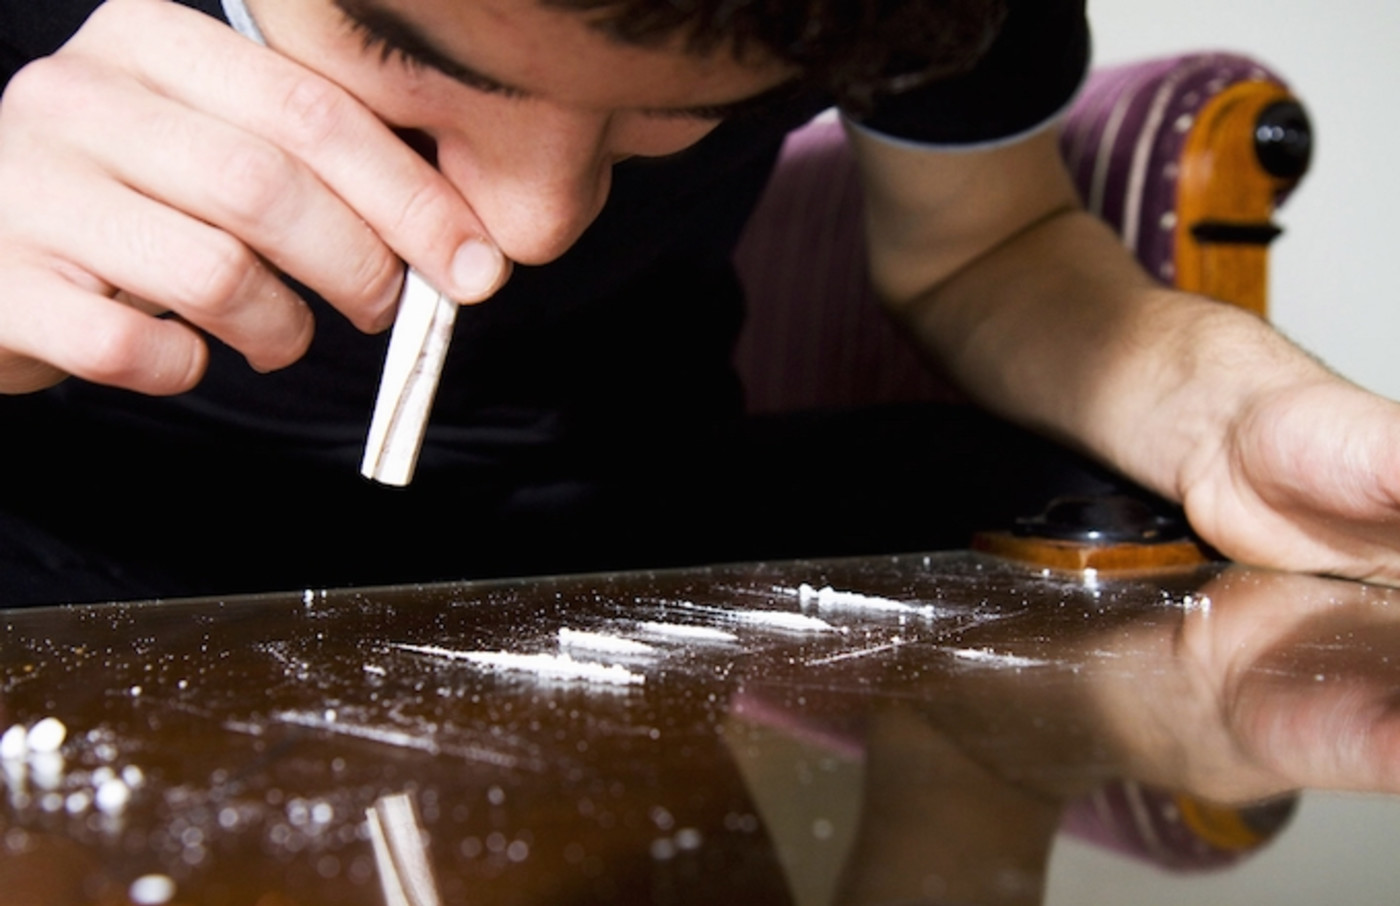 A person using cocaine.